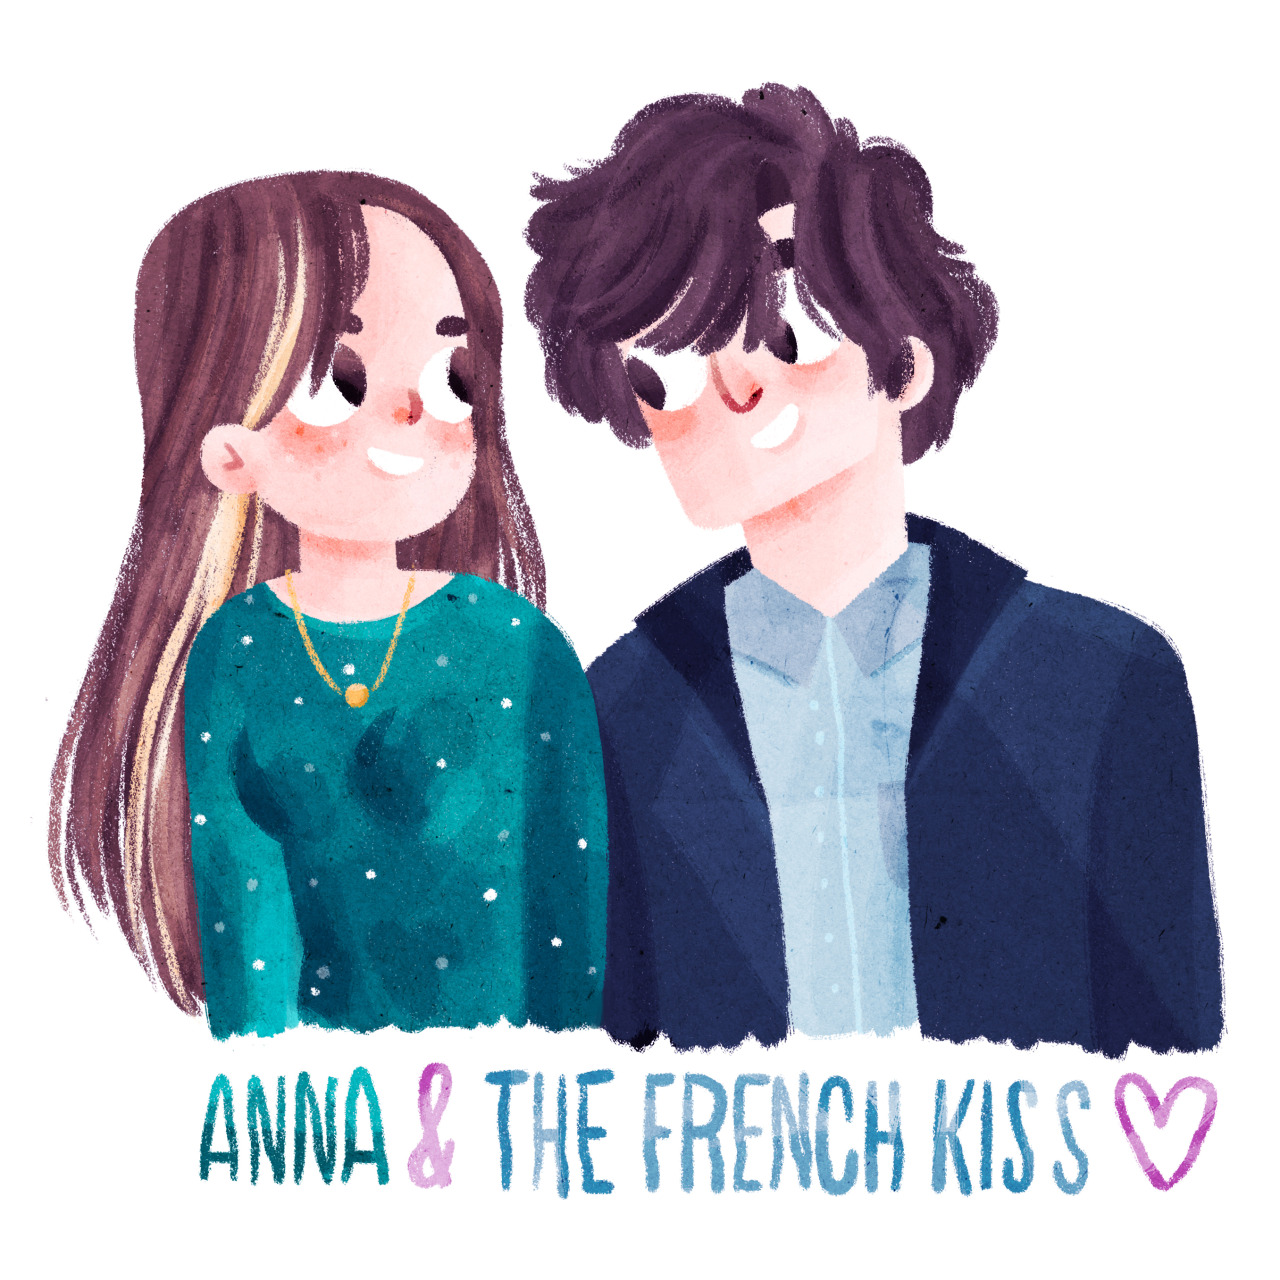 ♡ ♡ ♡ anna and étienne ♡ ♡ ♡